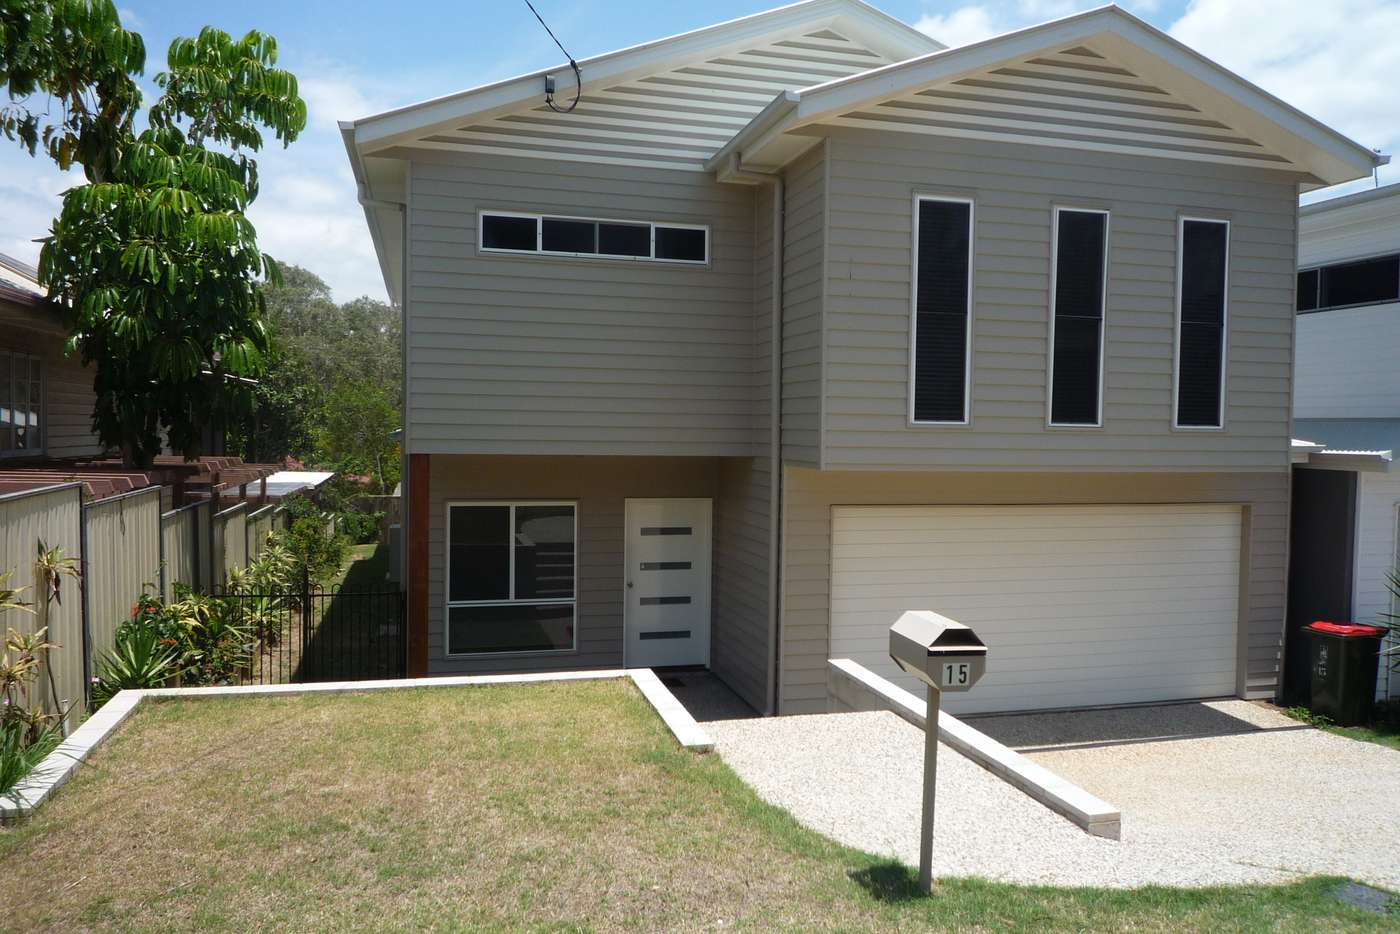 Main view of Homely house listing, 15 Wighton Street, Sandgate QLD 4017